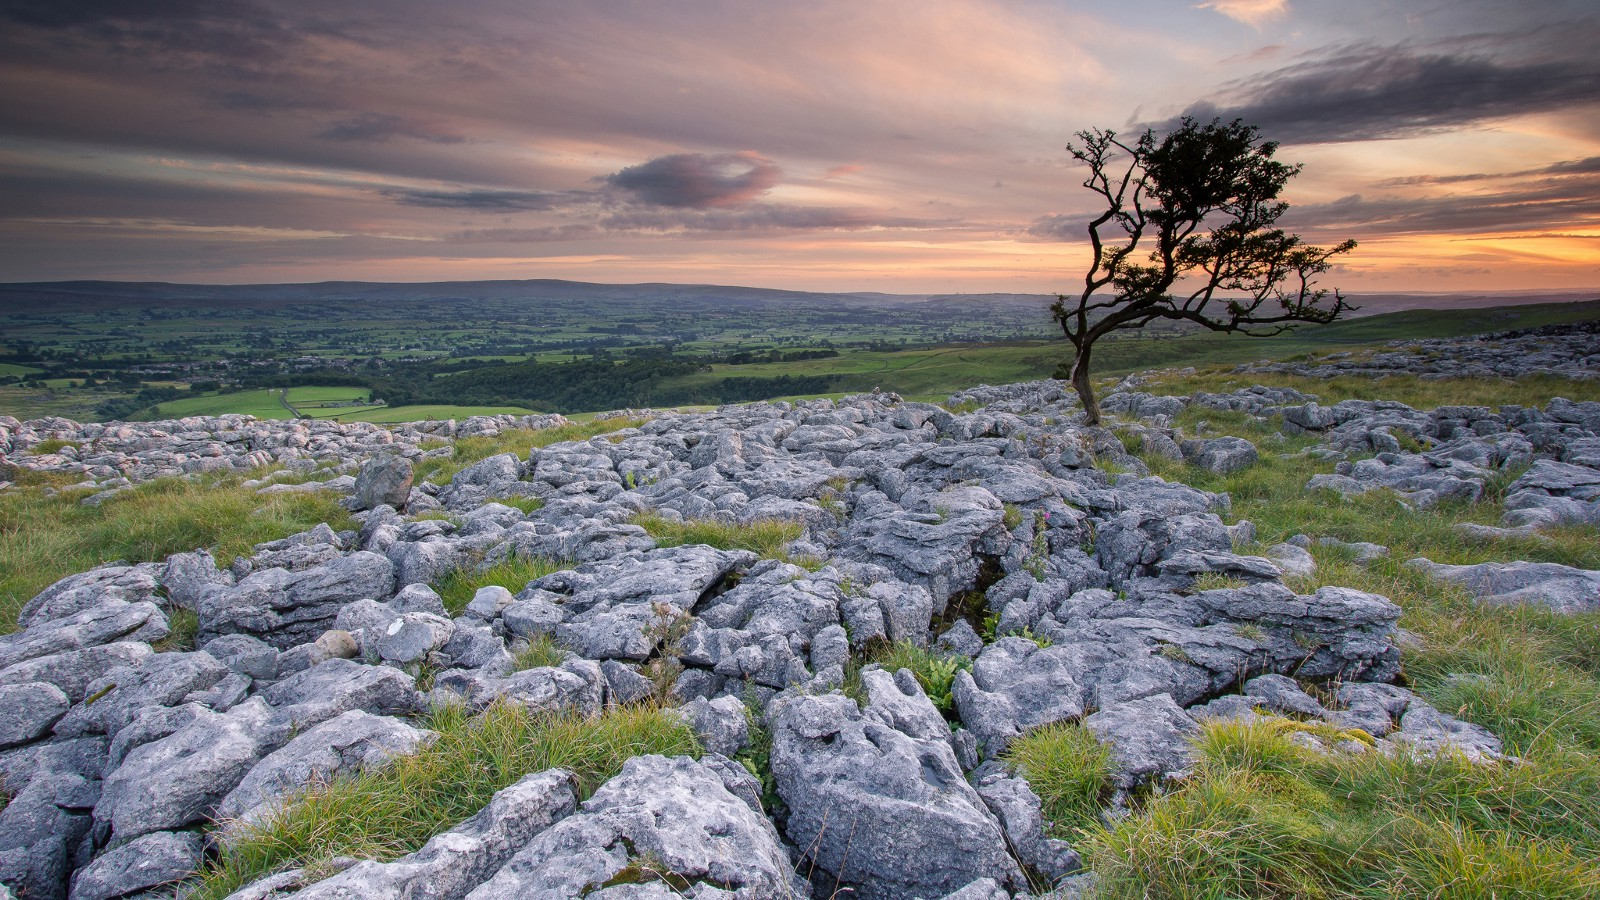 Sunset near limestone formations, UK